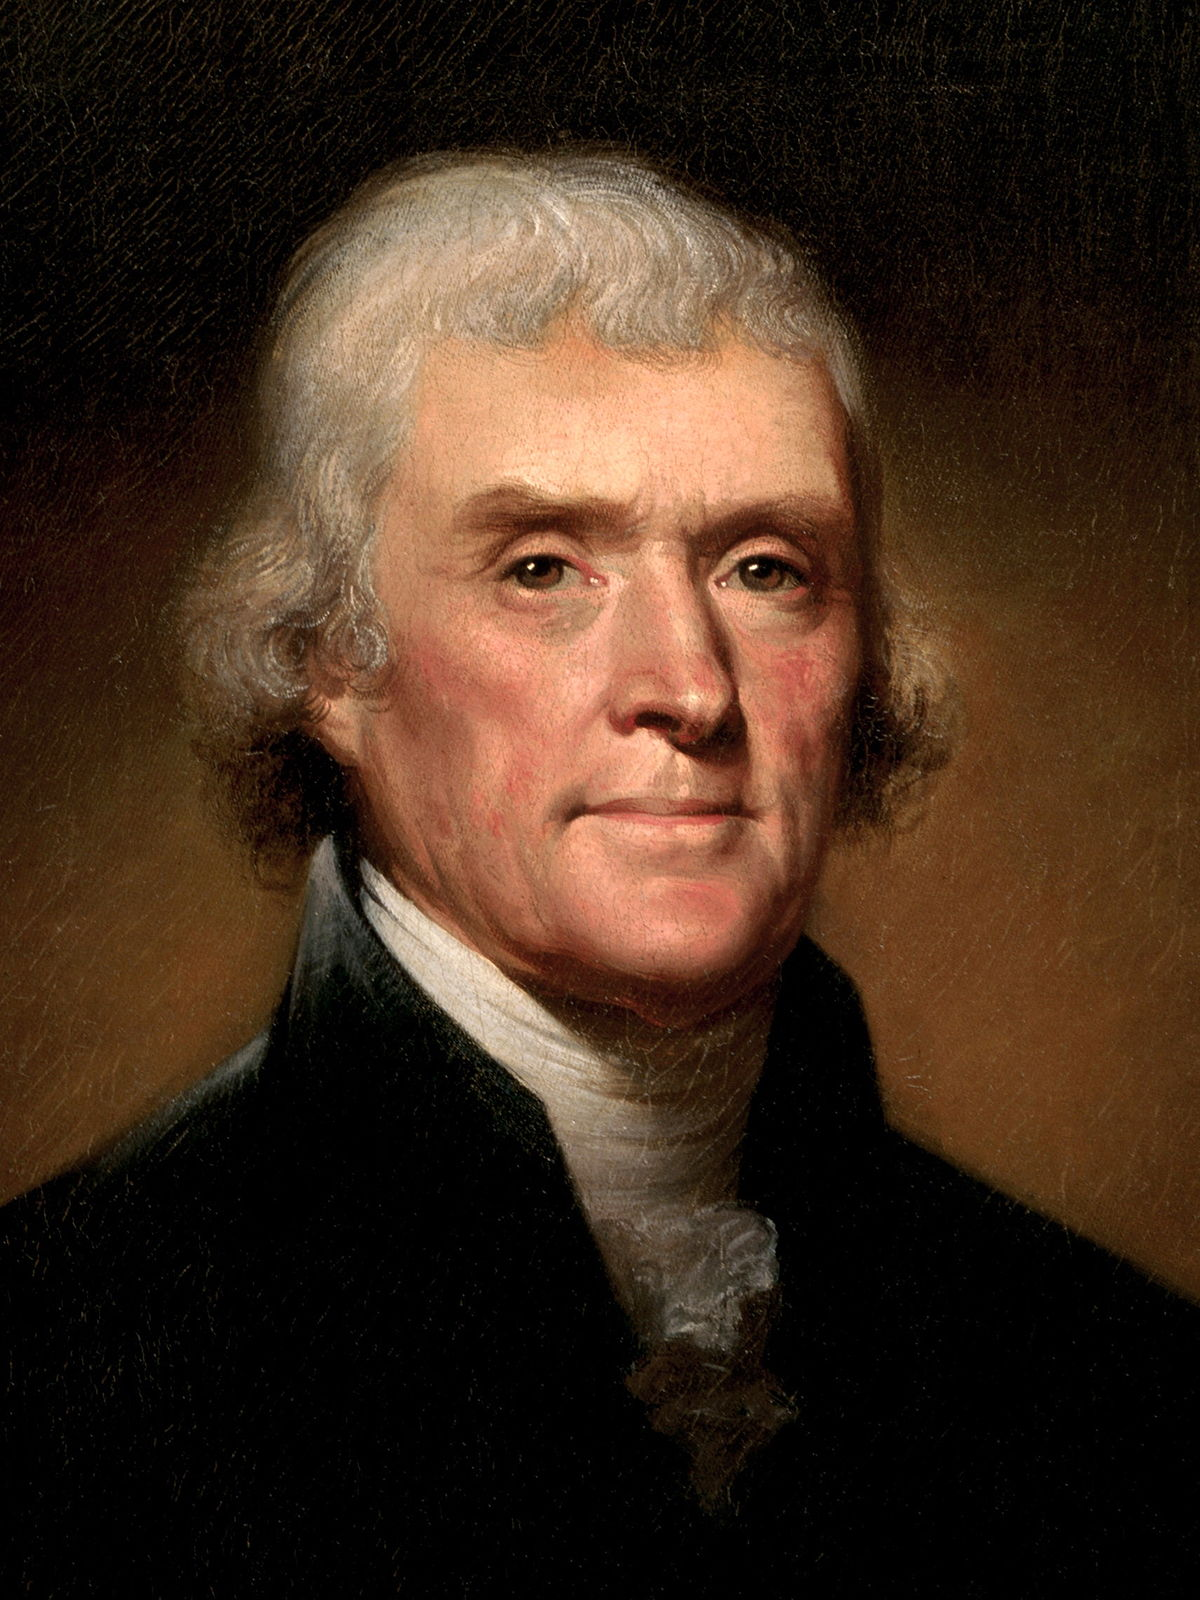 thomas jefferson seen as a hypocrite by other politicians Thinking like a historian: debating thomas jefferson and slavery 1the way wilson addresses the issue of presenting is by almost defending jefferson, when we look back on the things jefferson did we see him as a hypocrite, but if we consider jefferson's situation from his point of view we will see that he was not for example, wilson.